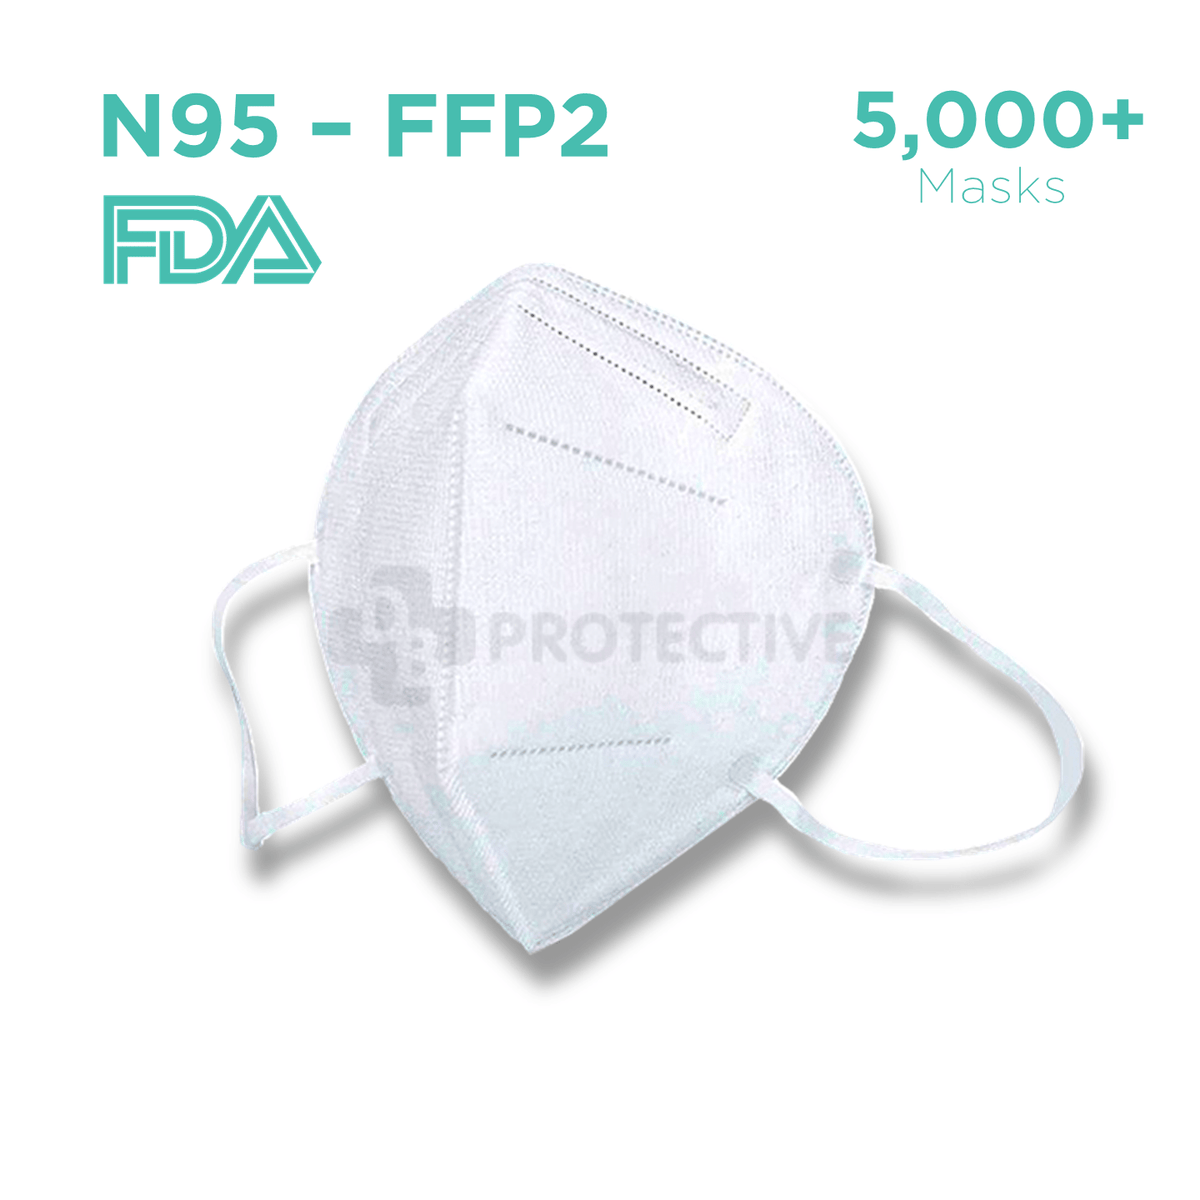 N95 FFP2 Medical Protective Face Mask - Pack of 5,000